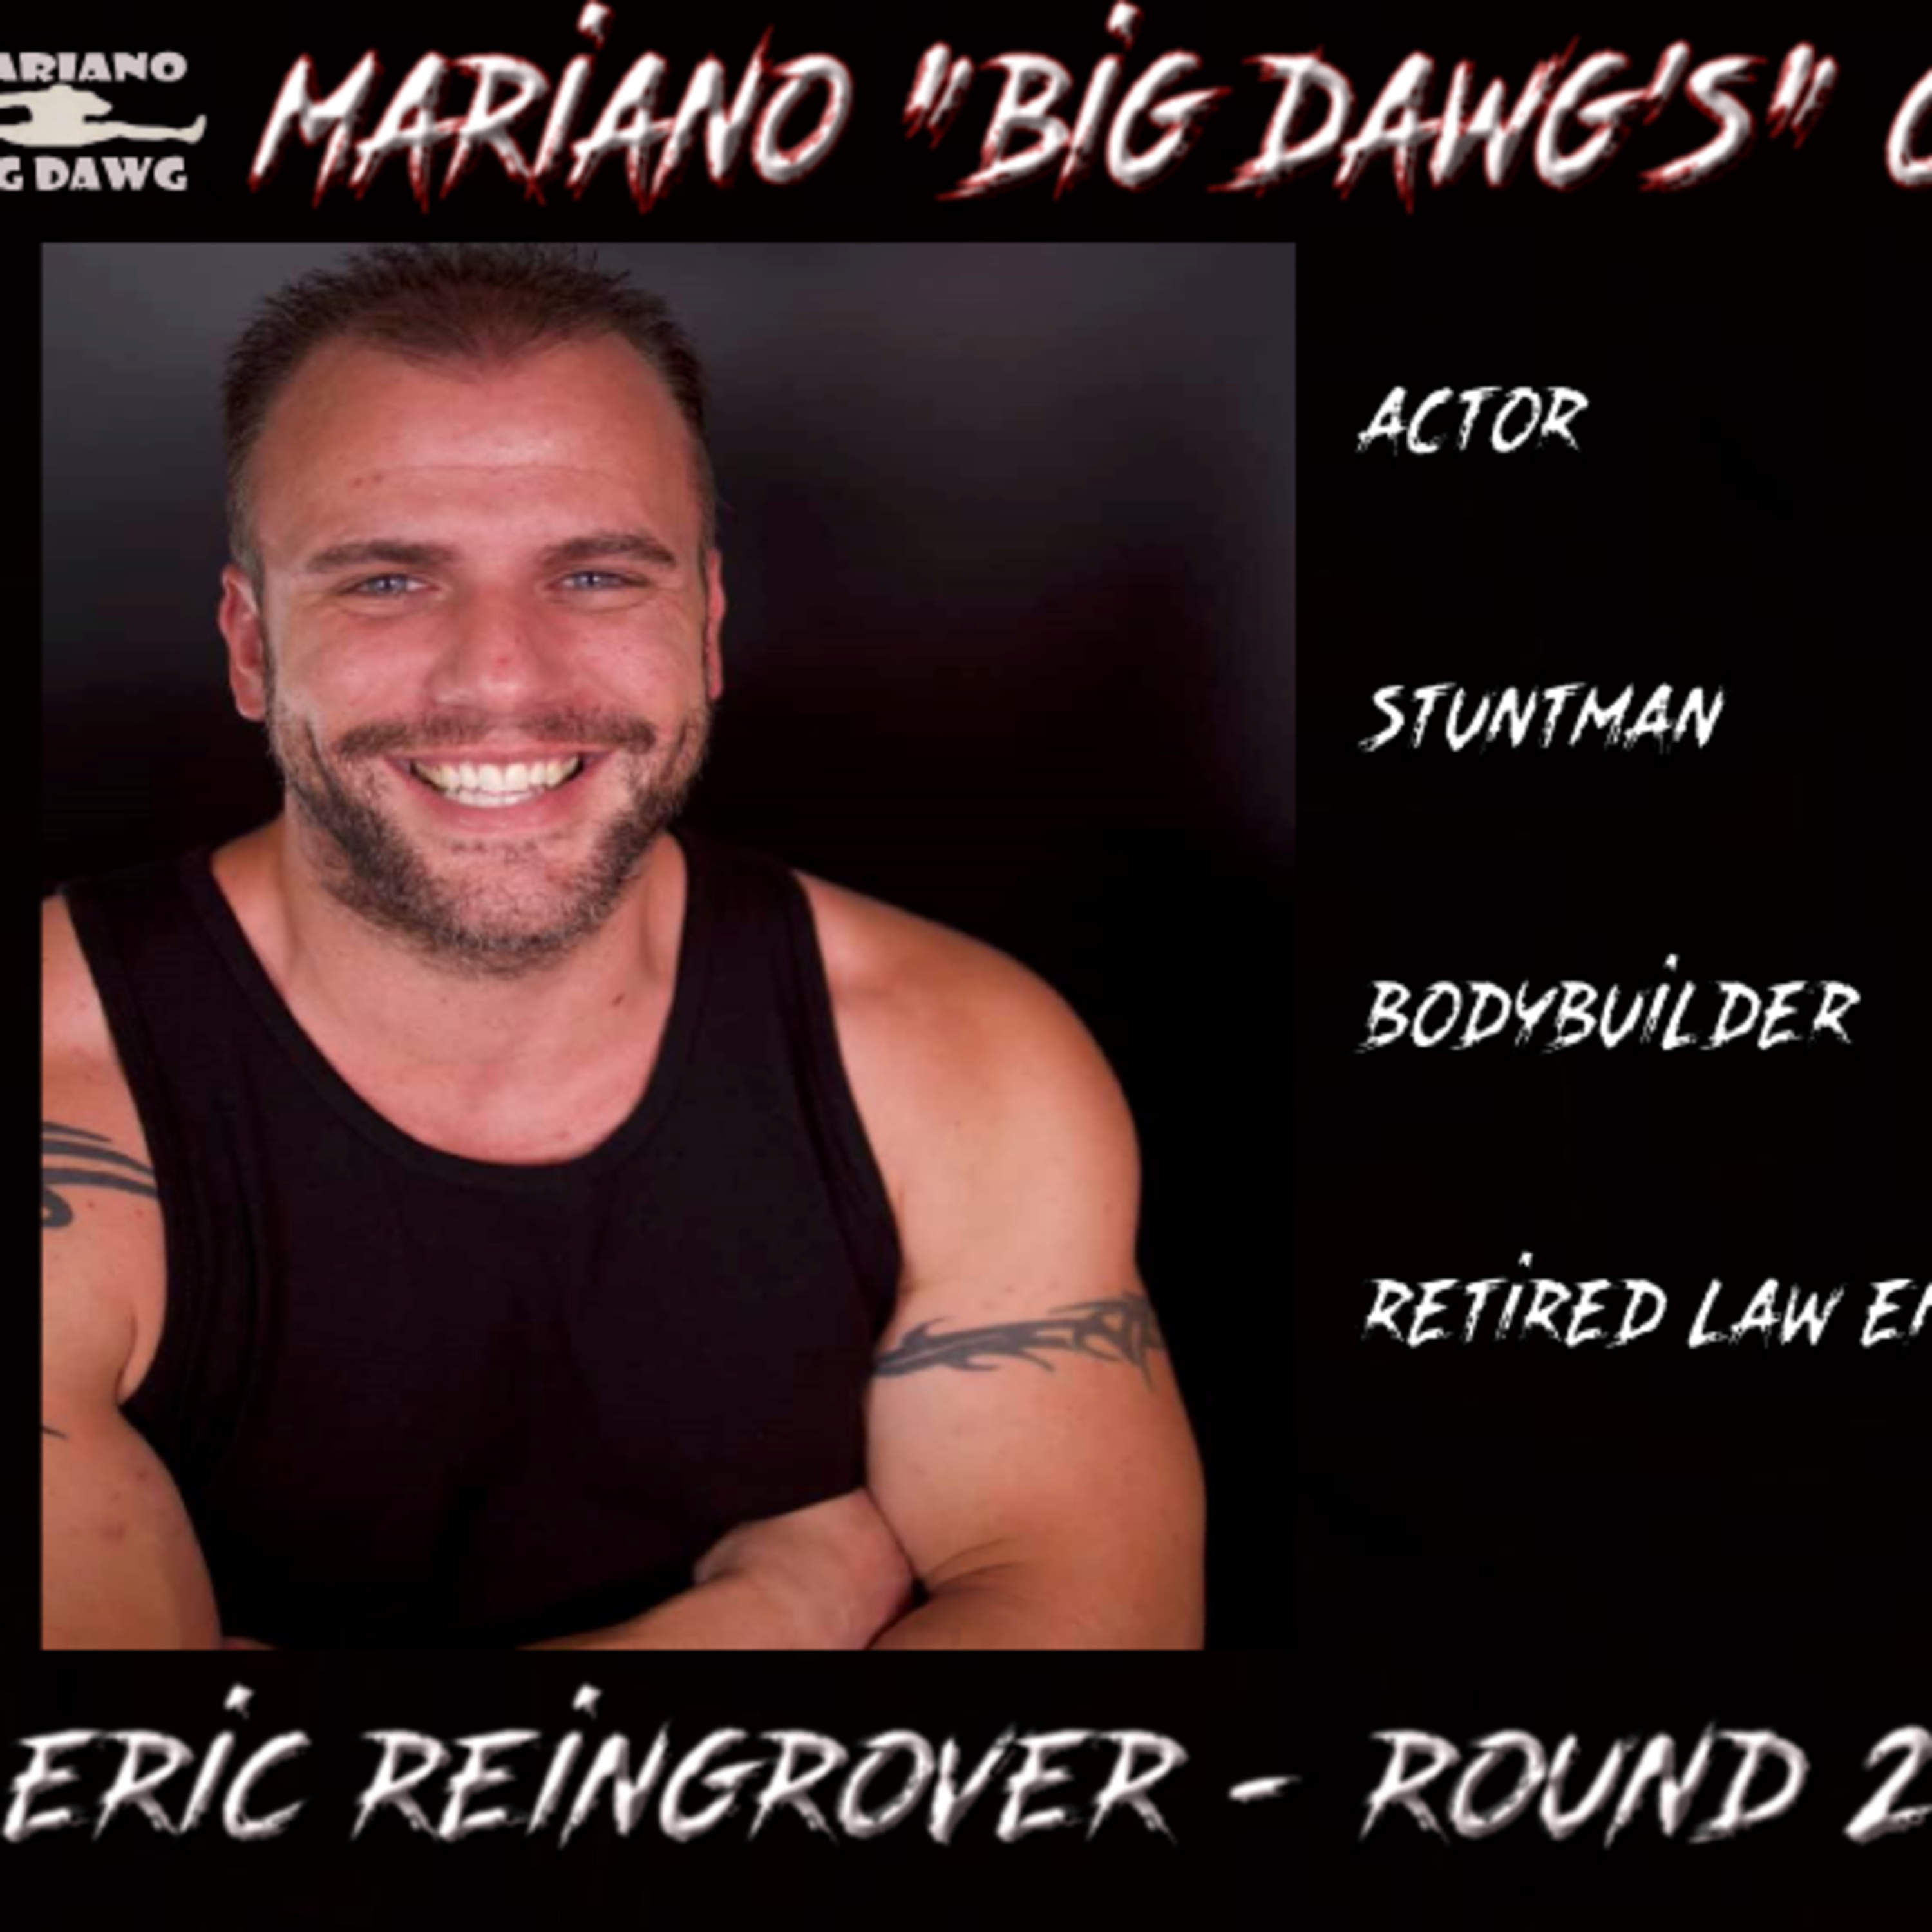 Exclusive Interview with Eric Reingrover - Round 2